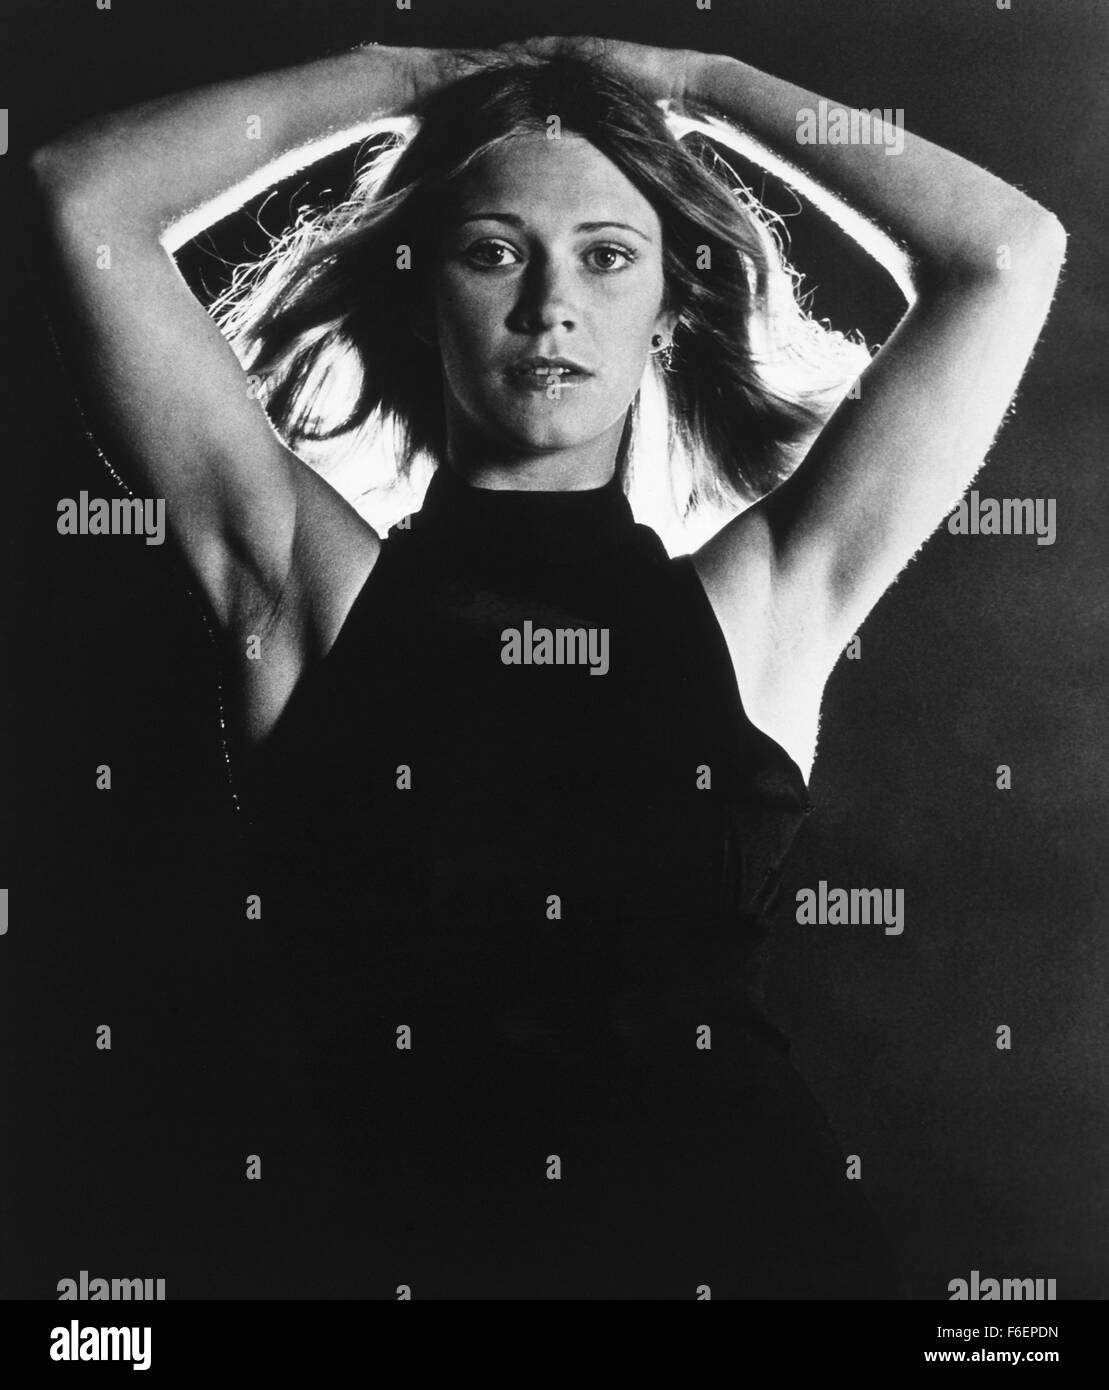 Le Meilleur Marilyn Chambers Stock Photos Marilyn Chambers Stock Ce Mois Ci